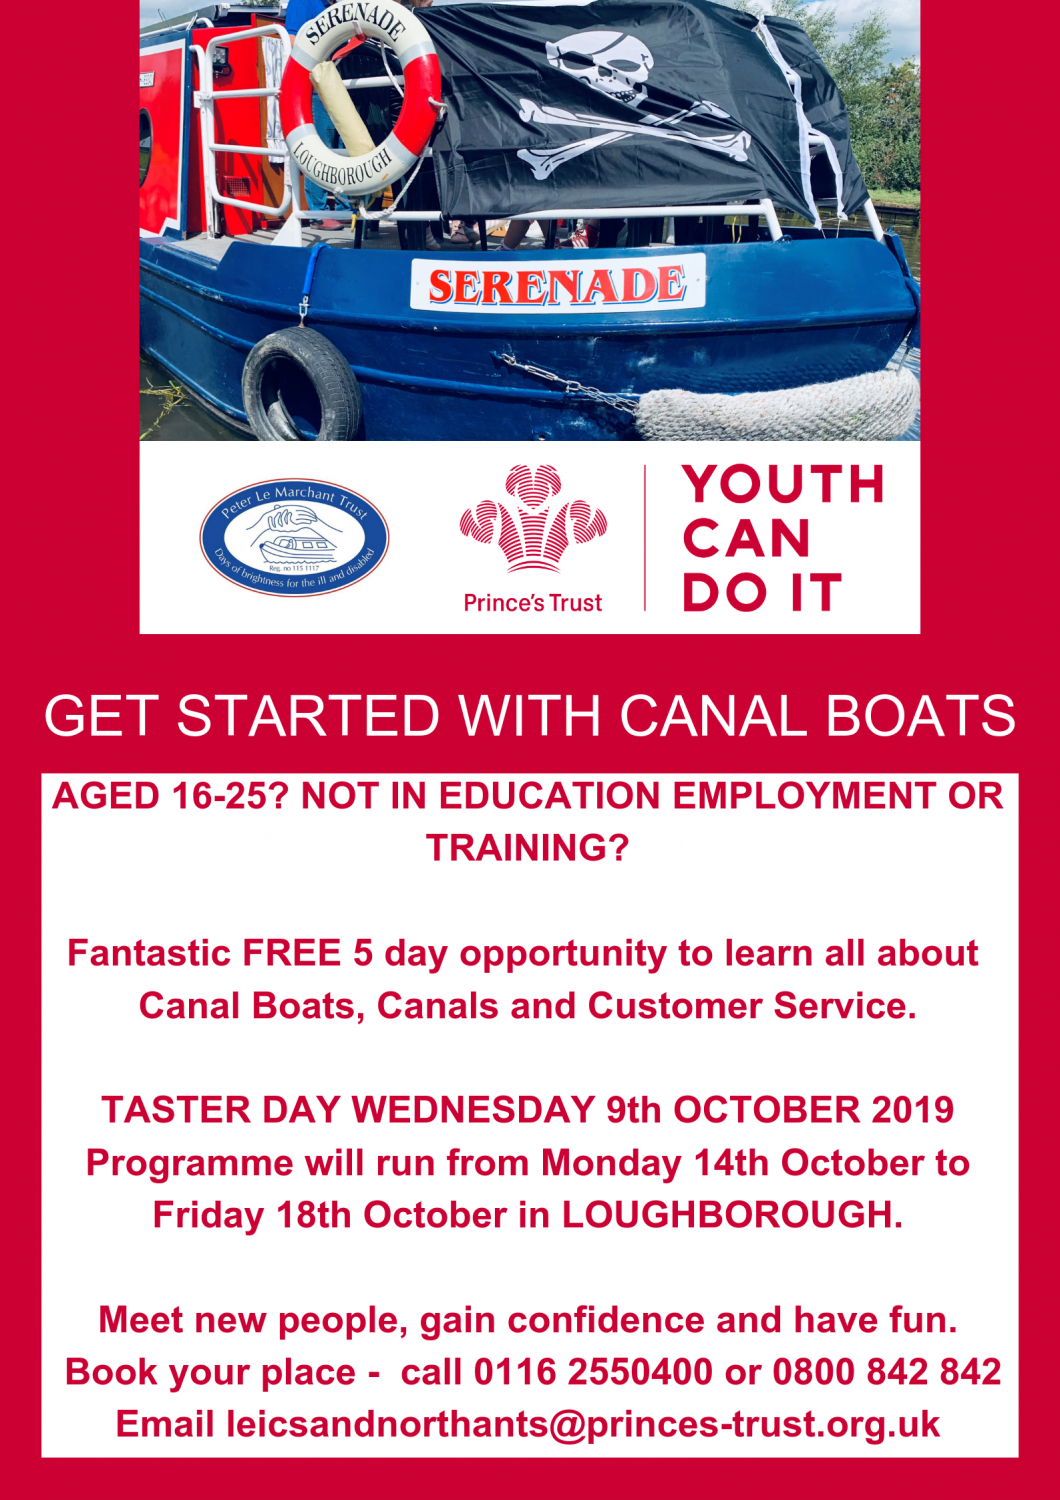 Do you have an interest in Canal boats?